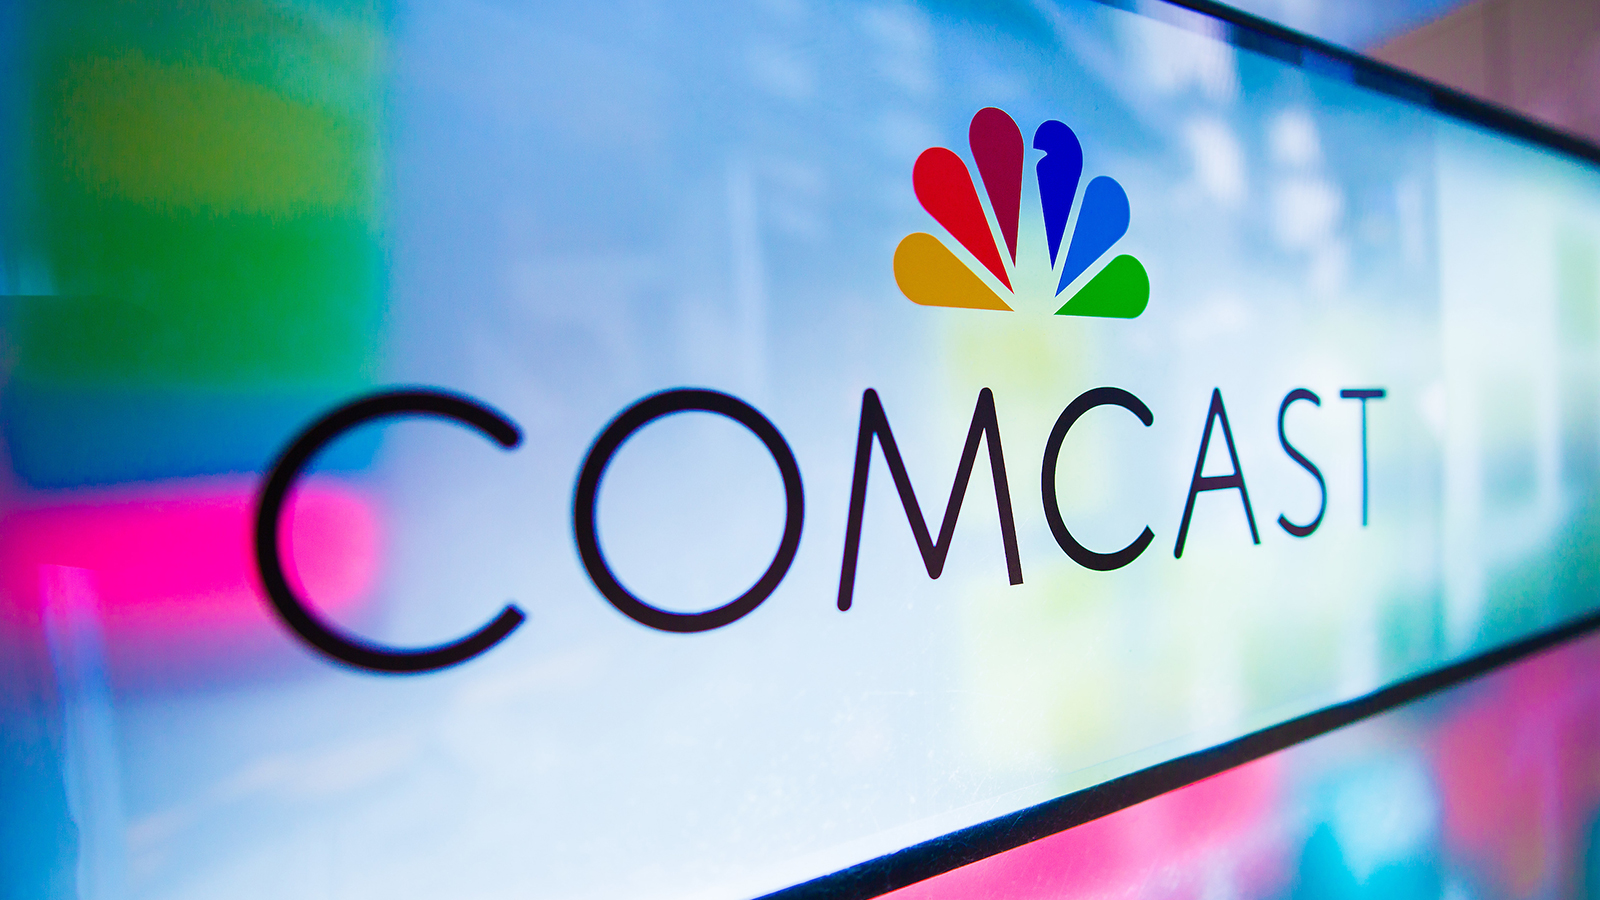 Comcast Resigns from the Silicon Valley Organization Board and Membership and Stands for Diversity, Equity and Inclusion